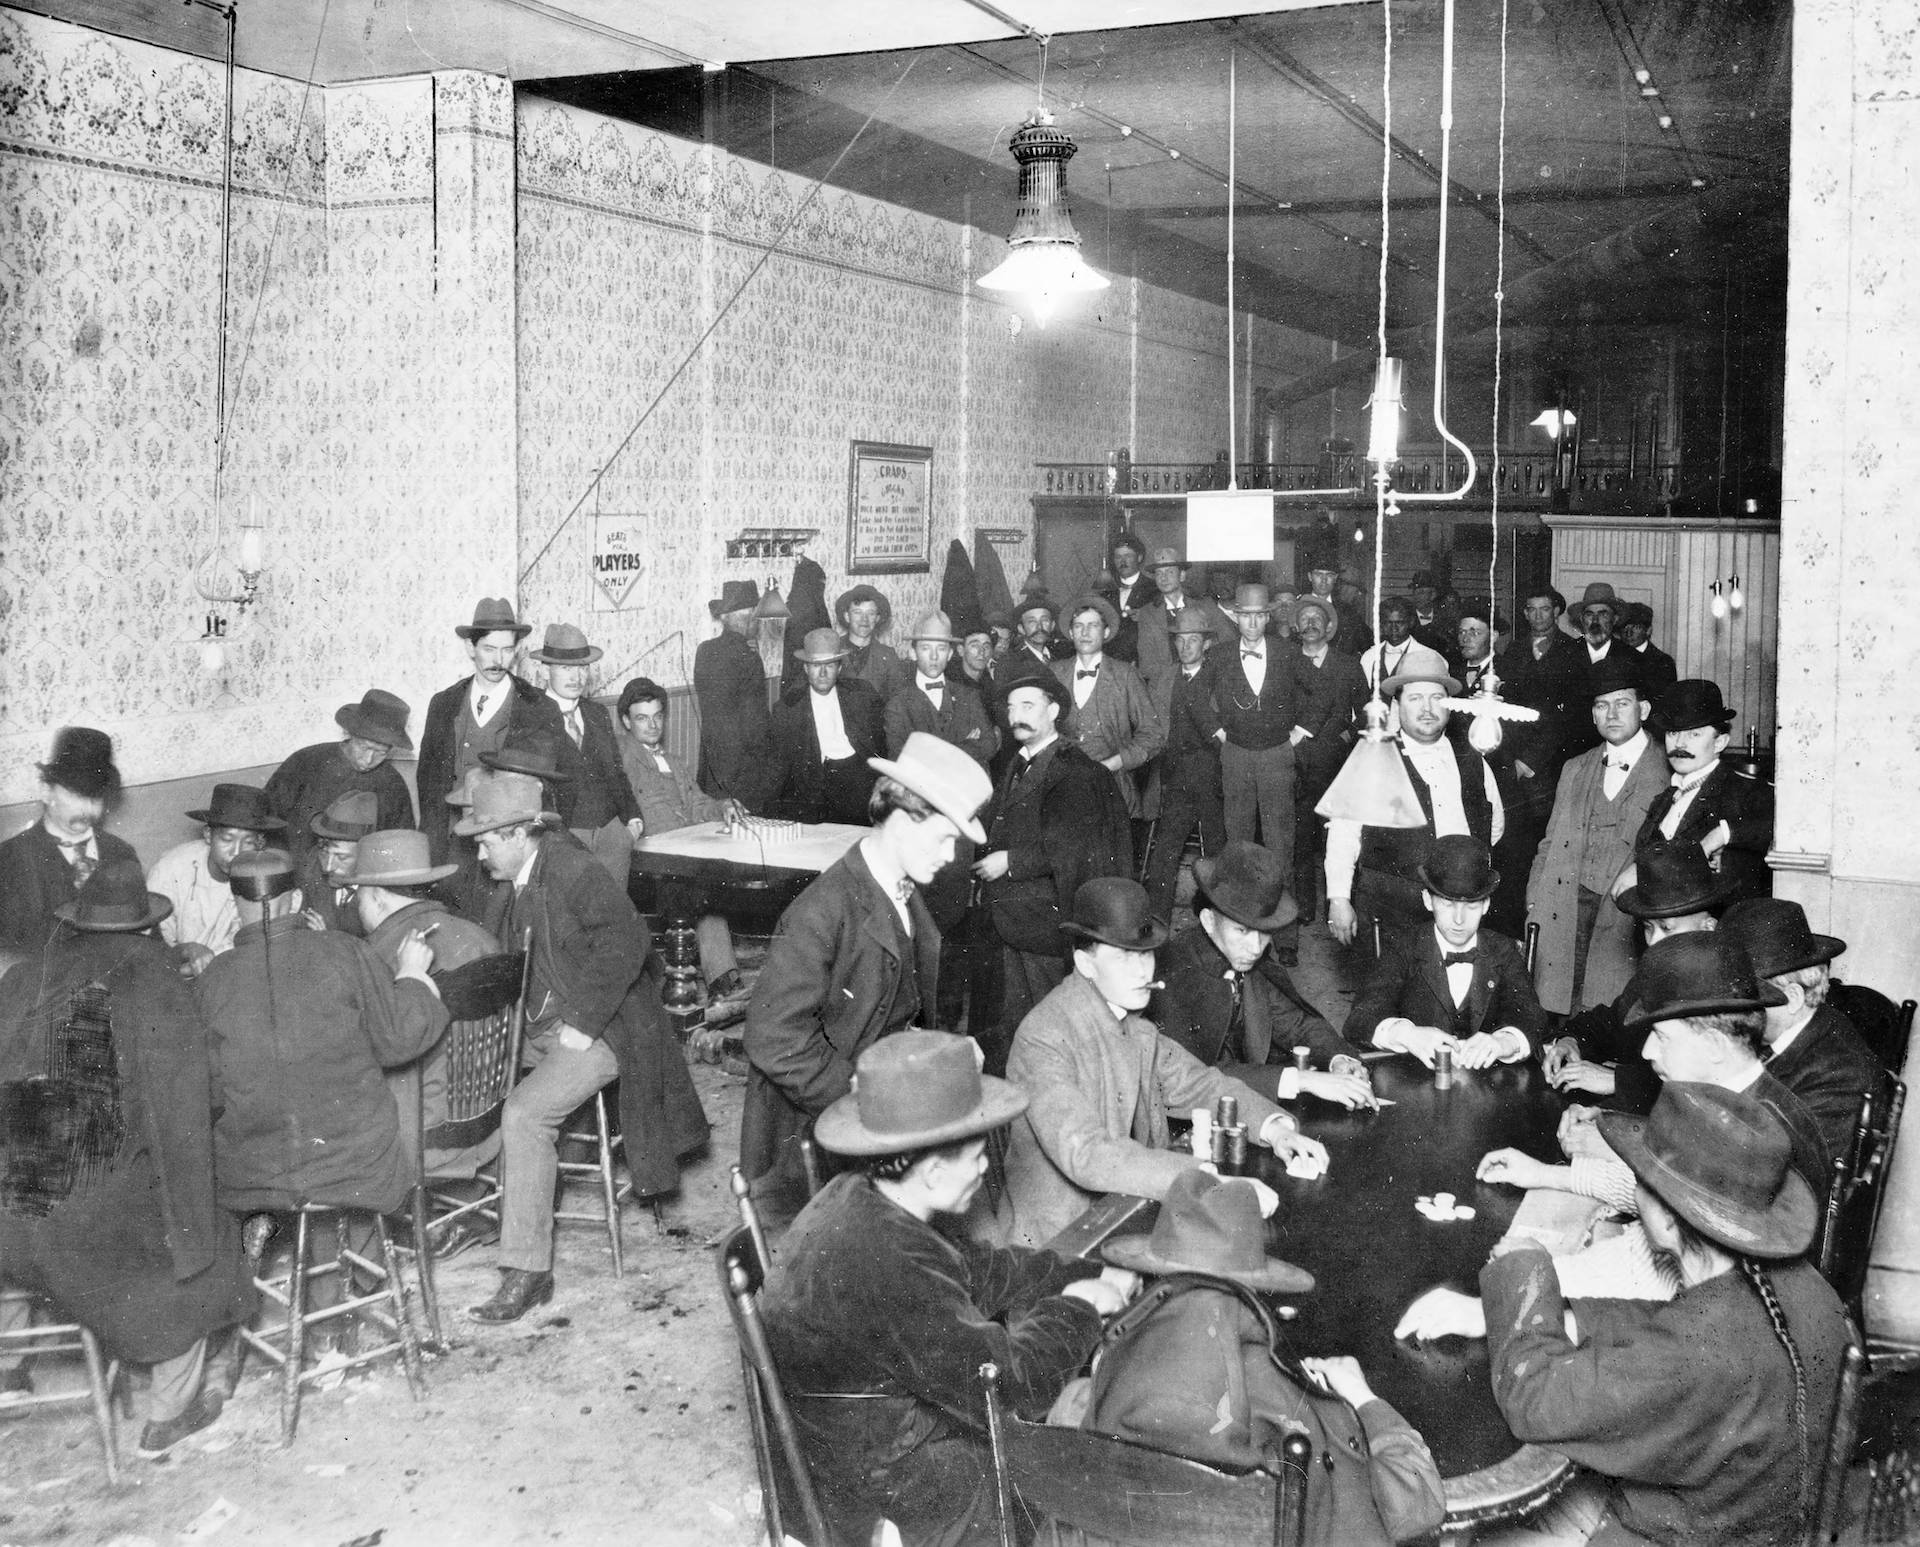 Gambling in Los Angeles, 1900